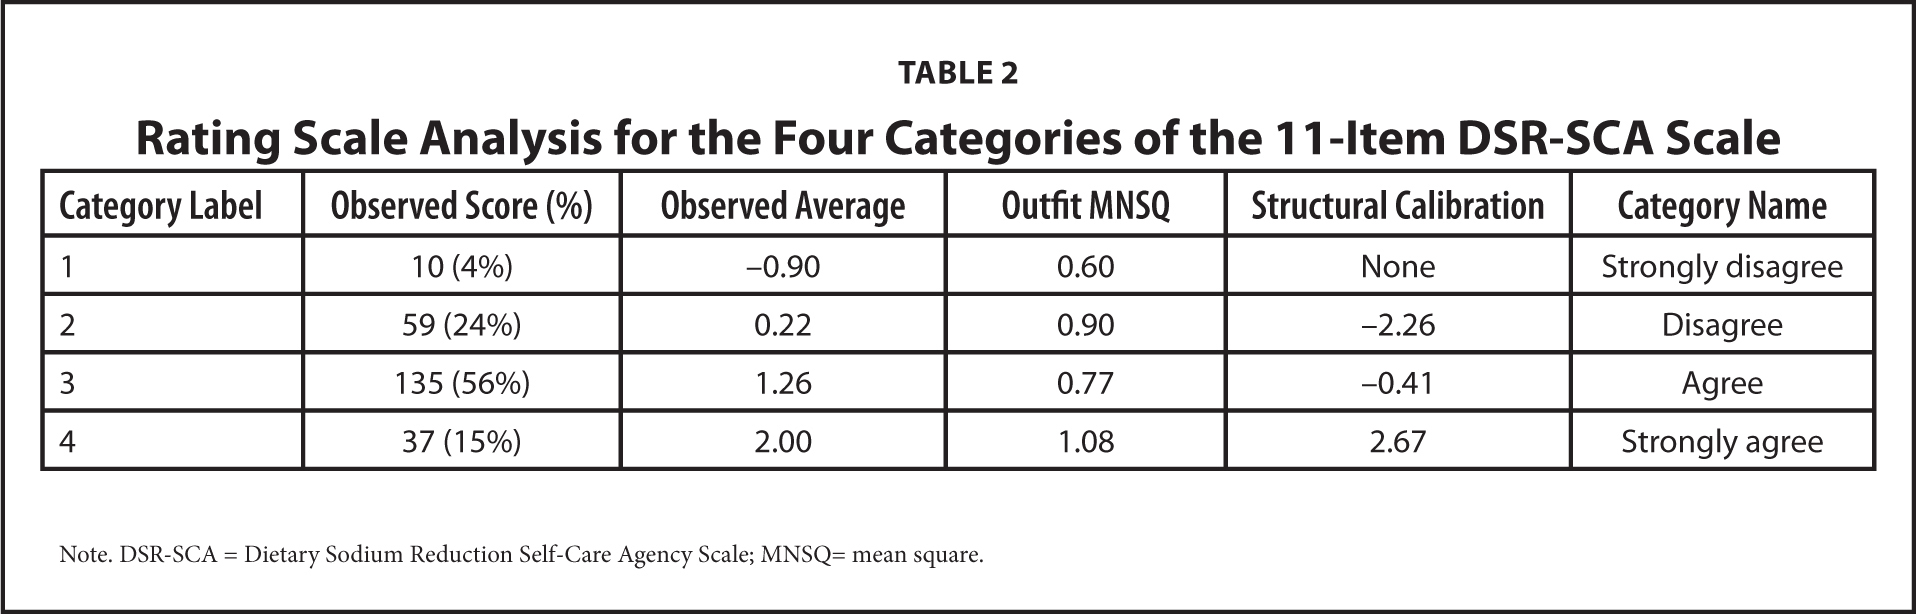 Rating Scale Analysis for the Four Categories of the 11-Item DSR-SCA Scale